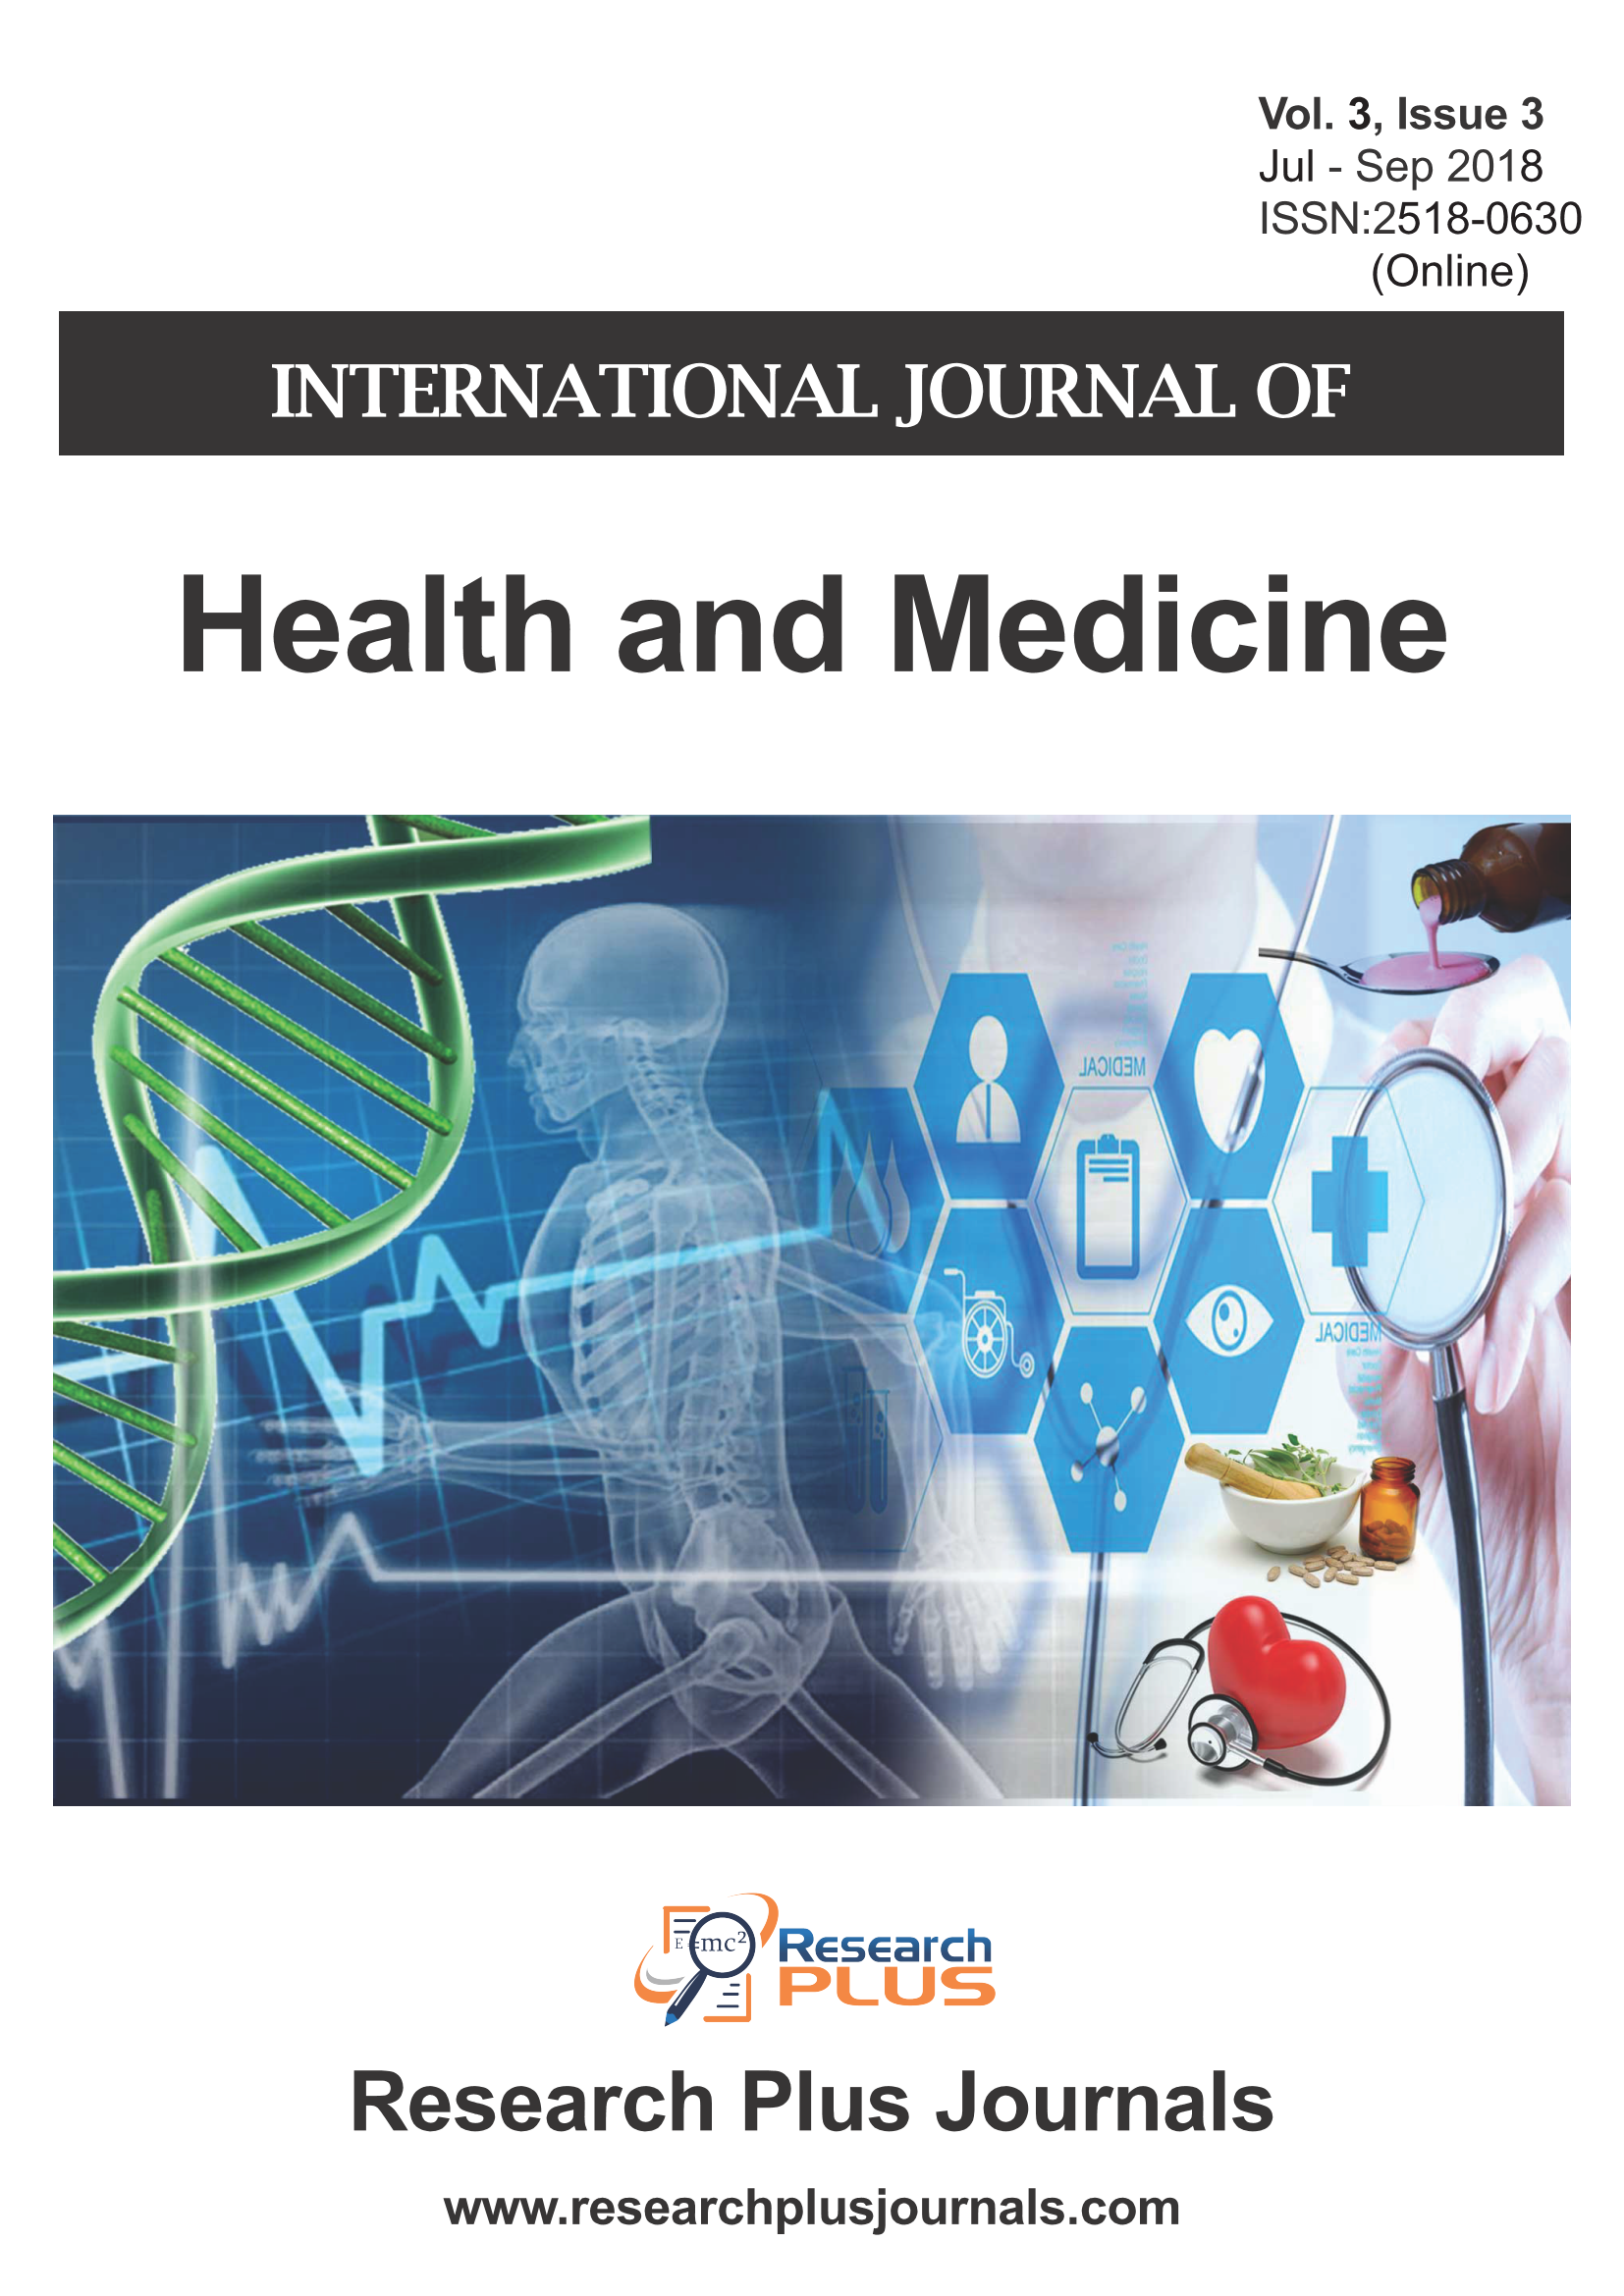 Volume 3, Issue 3, International Journal of Health and Medicine (IJHM) (Online ISSN: 2518-0630)